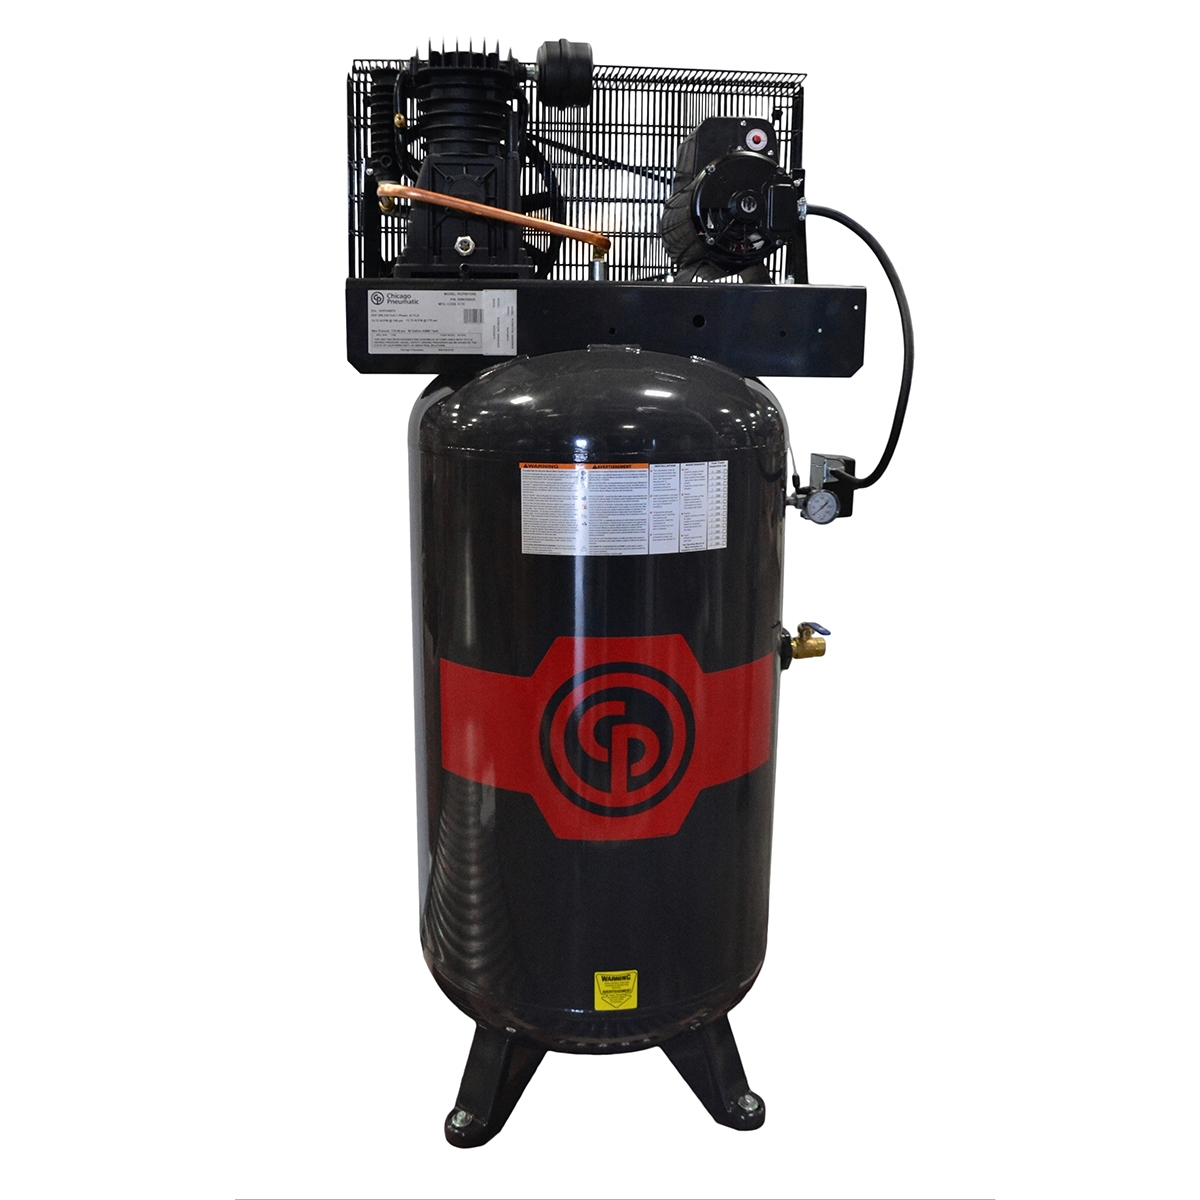 Air compressor tank RCP-581VNS Chicago Pneumatic